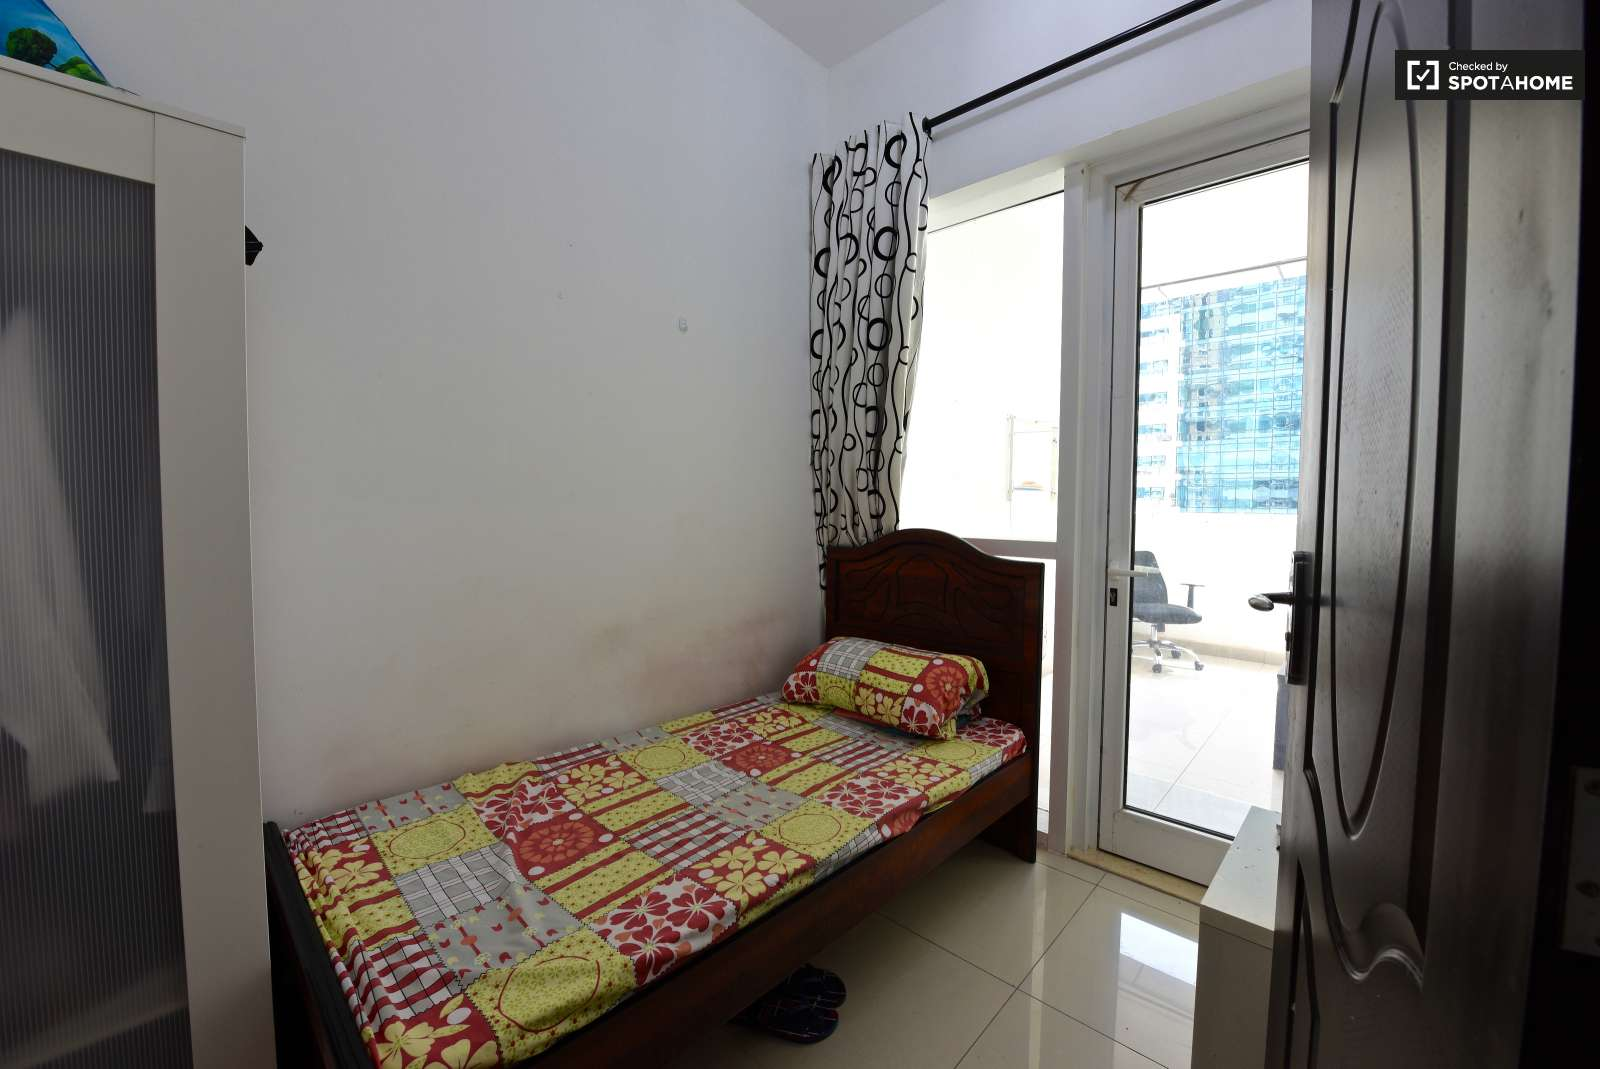 Spacious Room In 6 Bedroom Apartment In Dubai Marina Dubai Ref  # Muebles Bizkaia Guenes